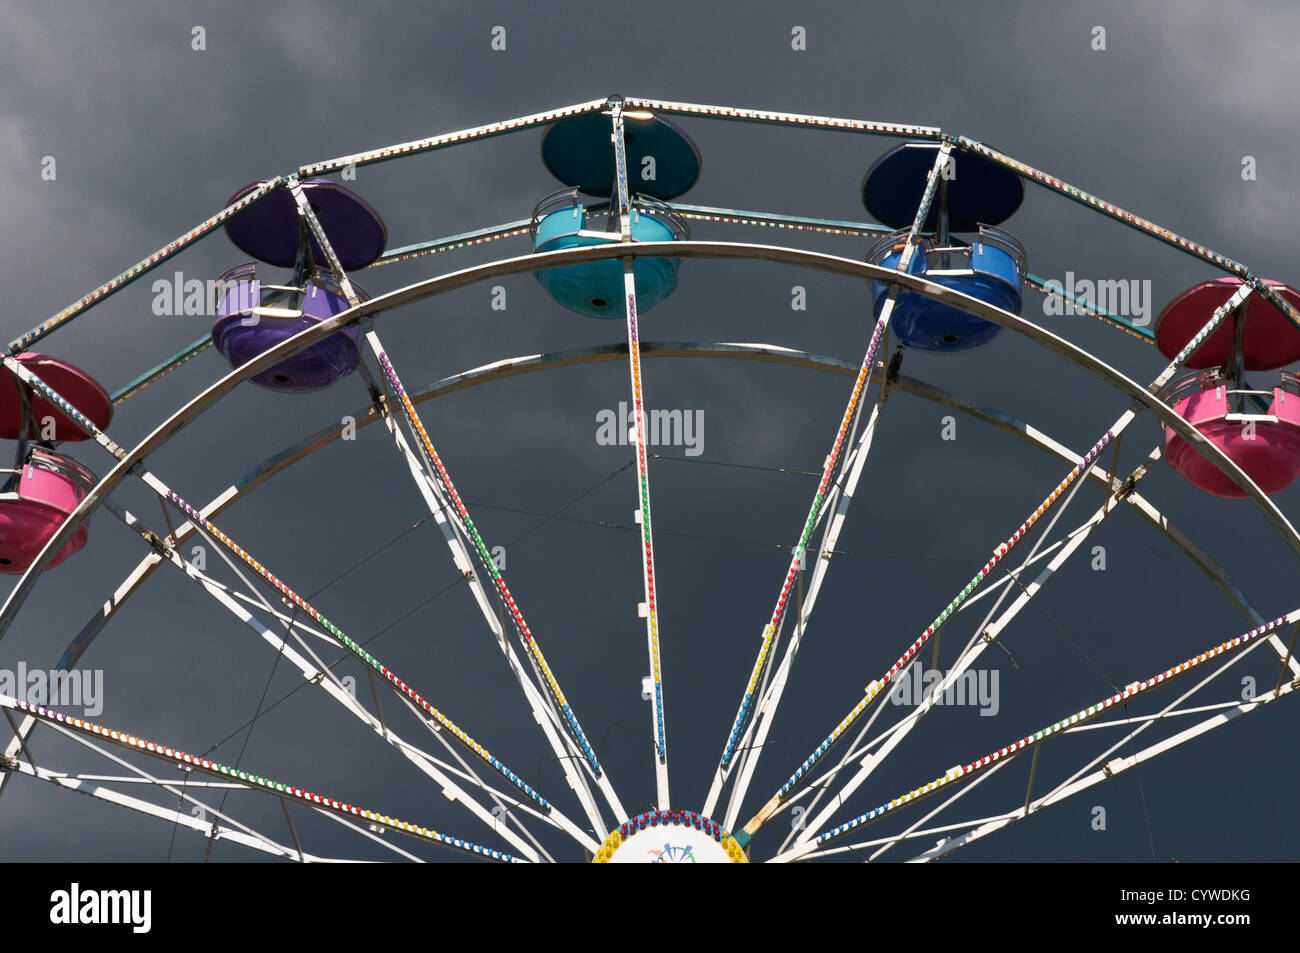 A ferris wheel against a stormy sky Stock Photo